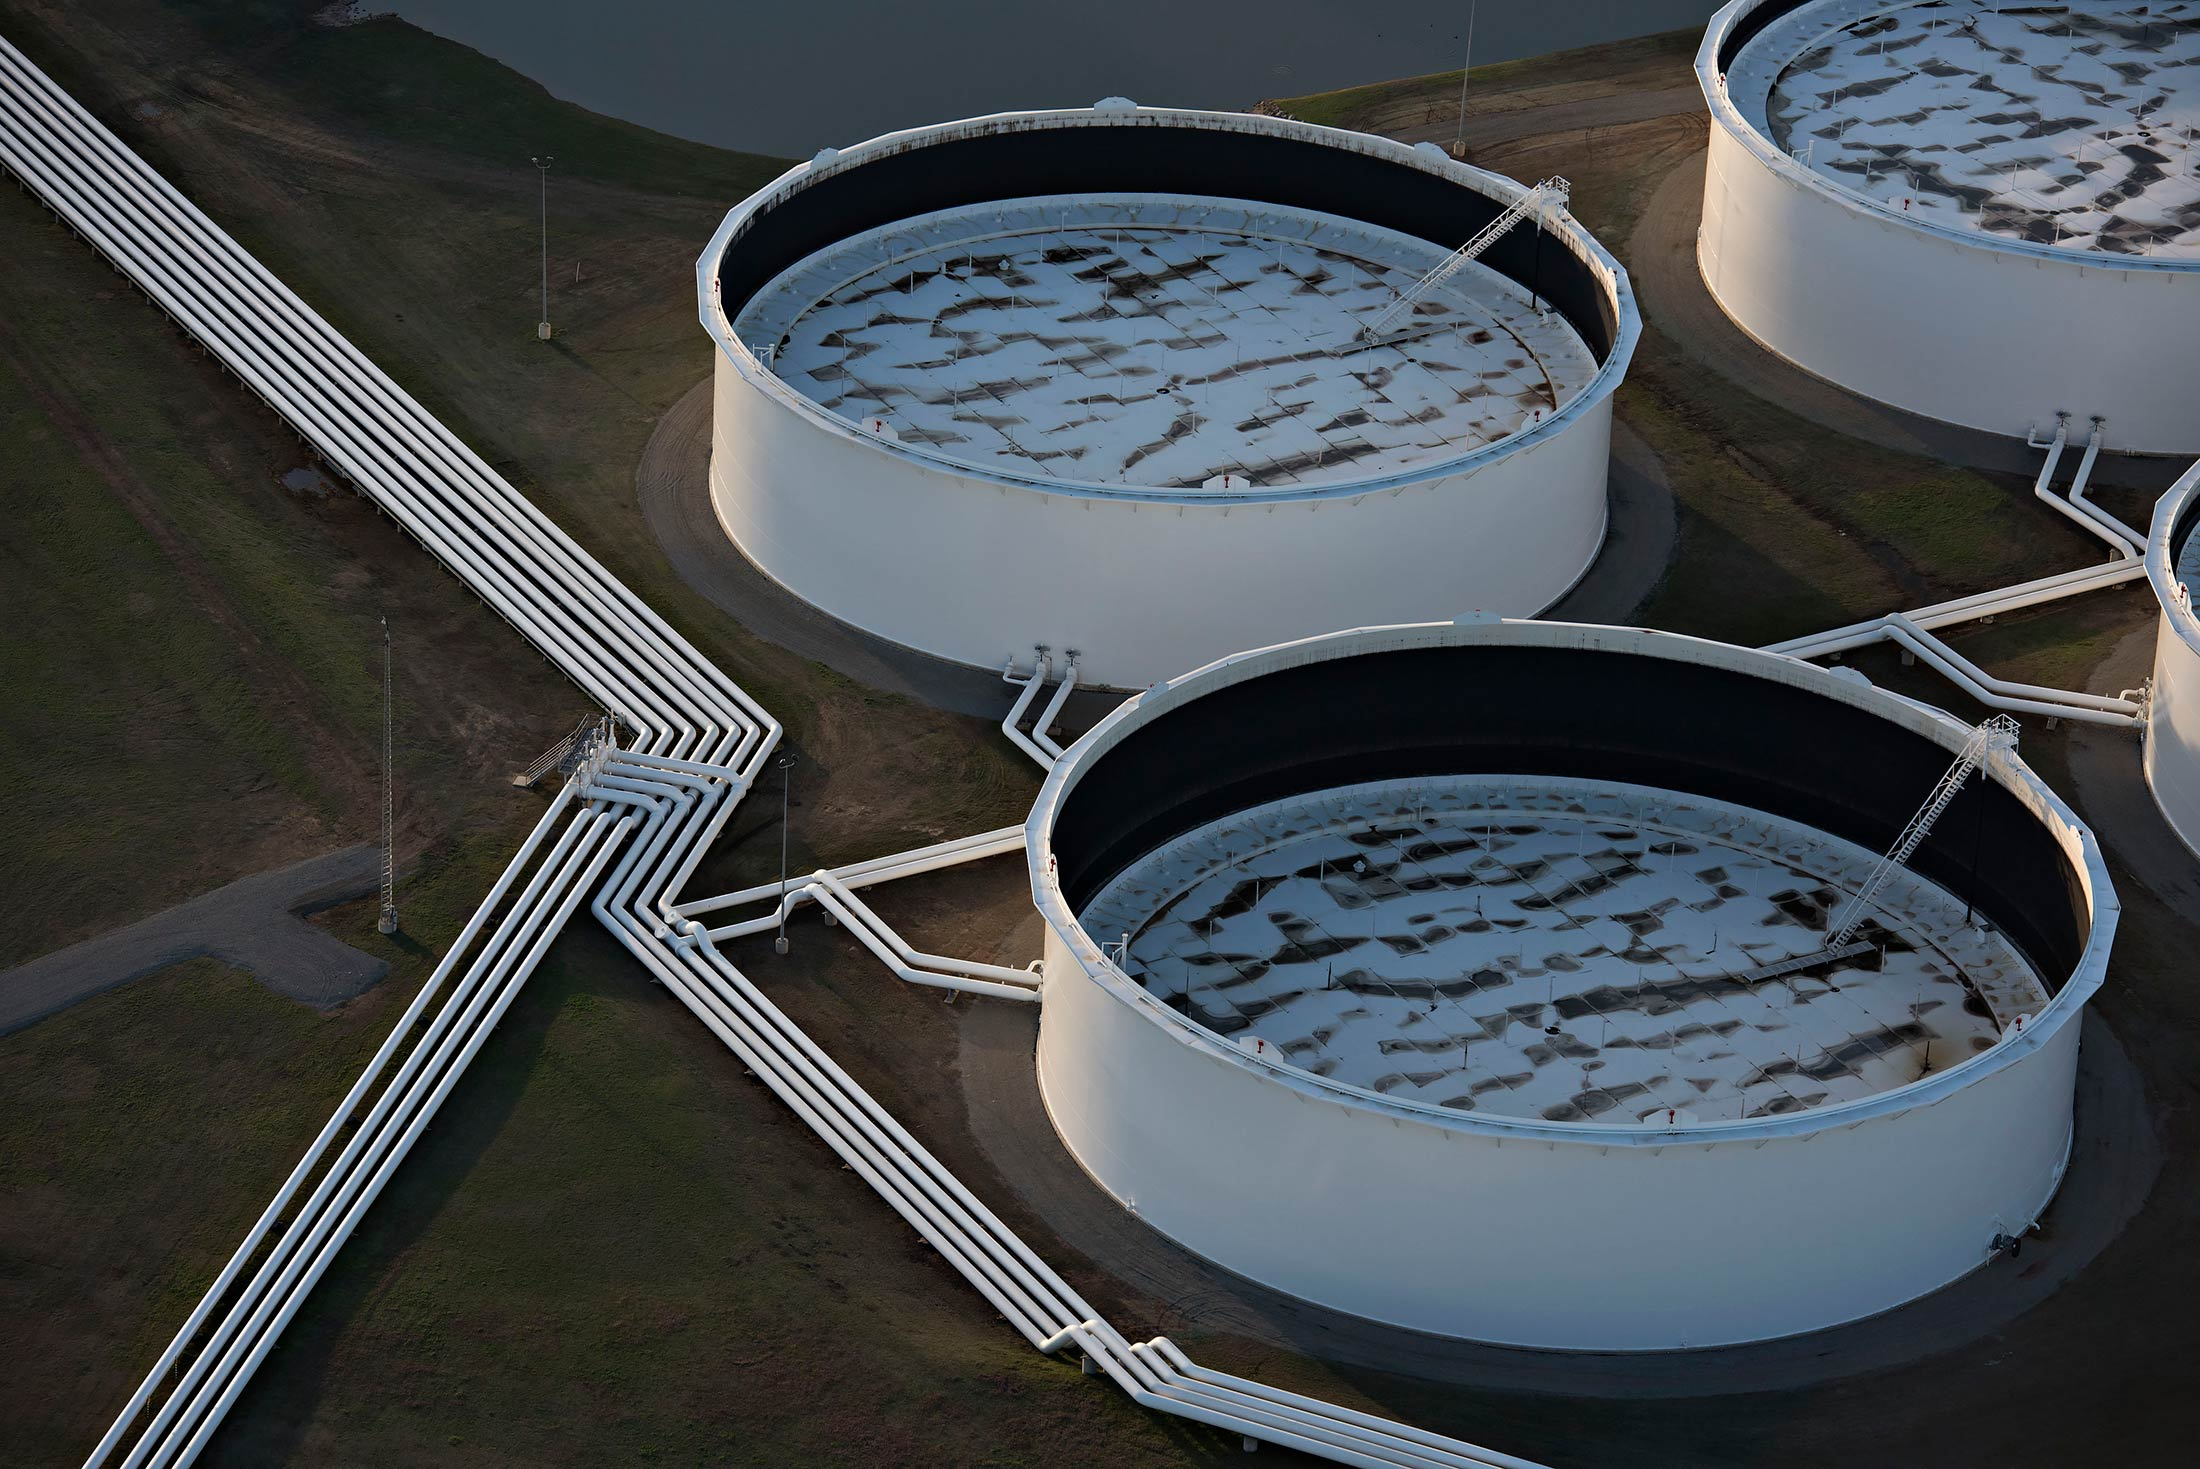 Aerial Views Of Largest U.S. Oil Hub As Stockpile Growth Slows